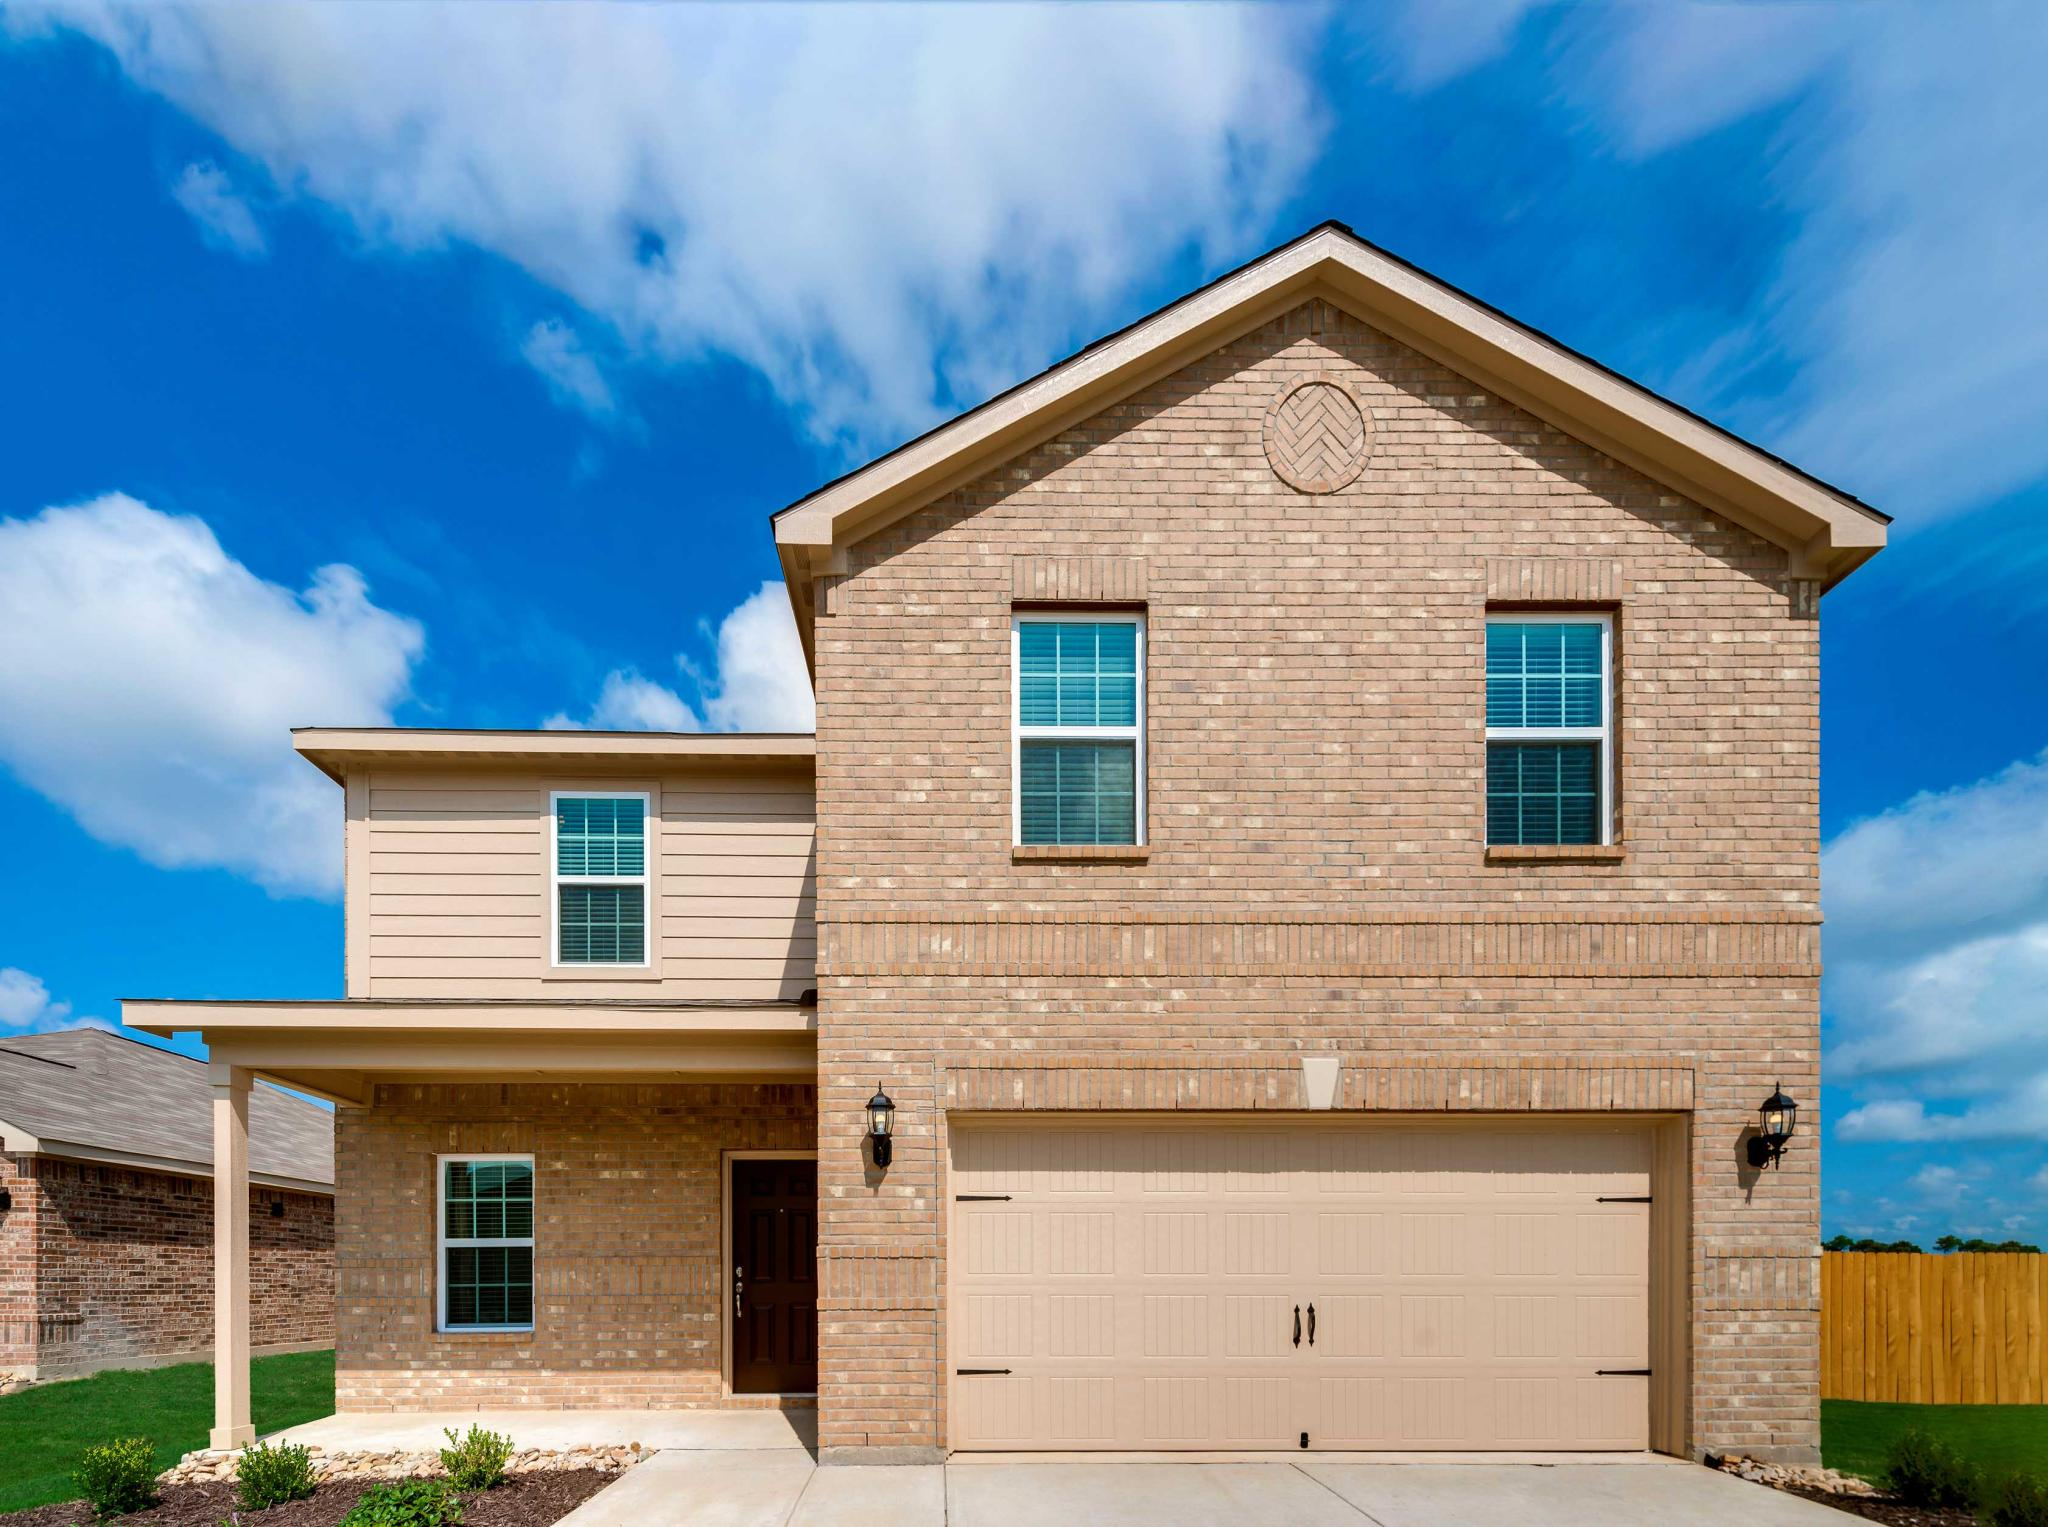 Higgins Plan For Sale Princeton TX – Lgi Homes Sabine Floor Plan